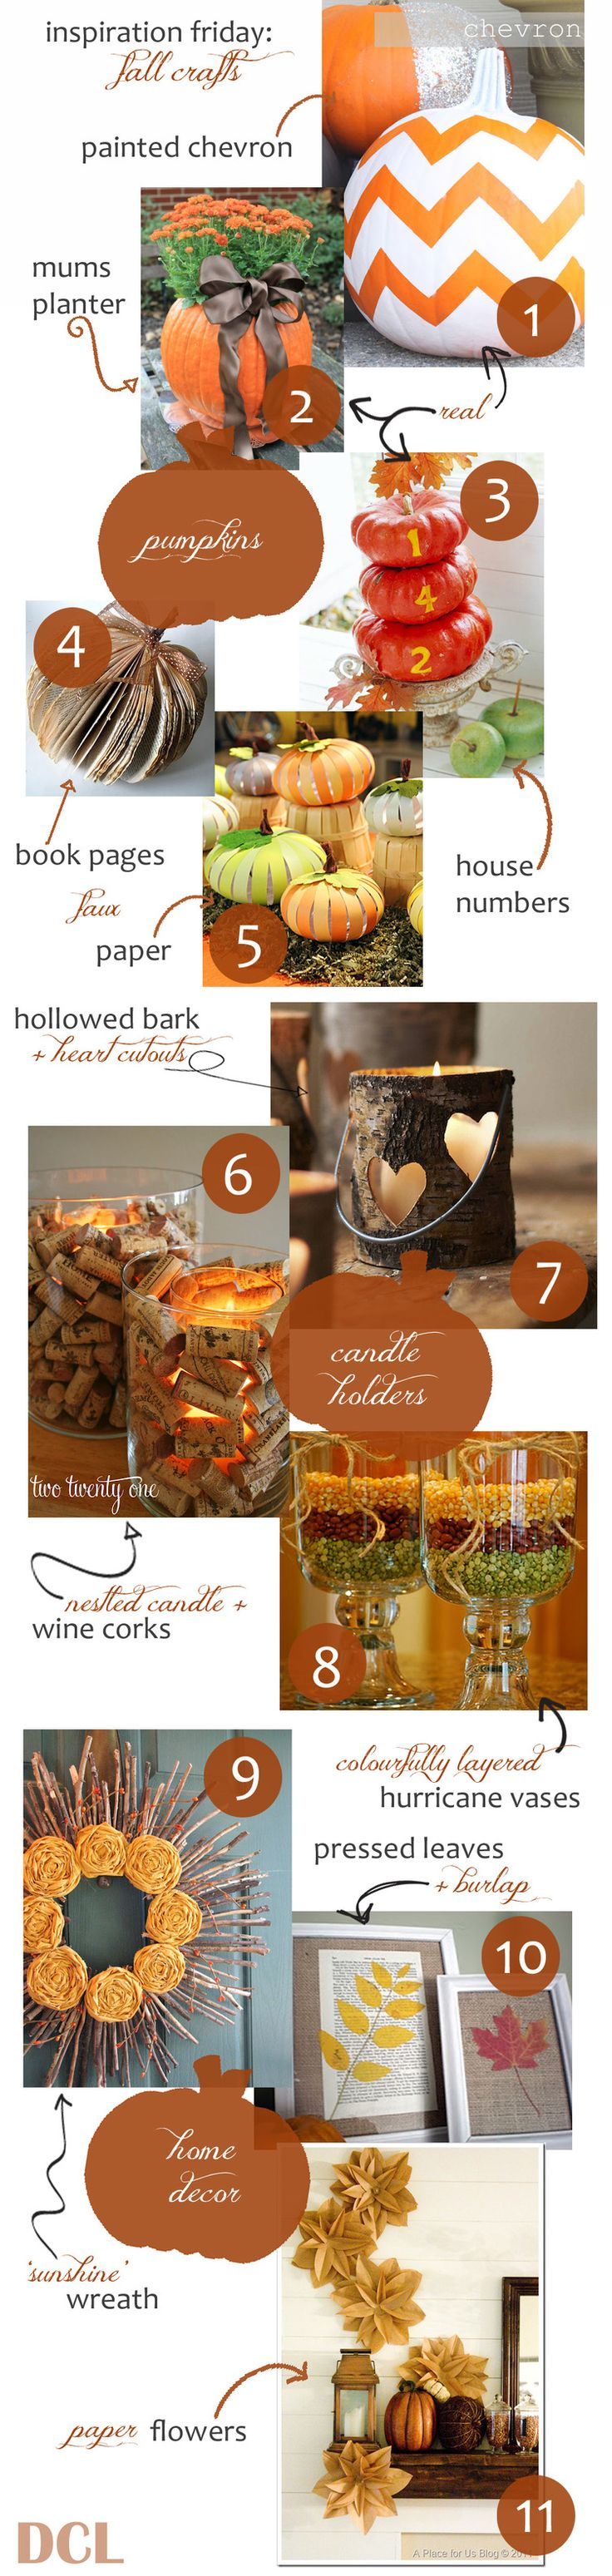 Inspiration Friday: Fall Crafts Ideas! #1 and #7 are now on my MUST DO list!!! Ahhh I can't WAIT for fall now!! :)